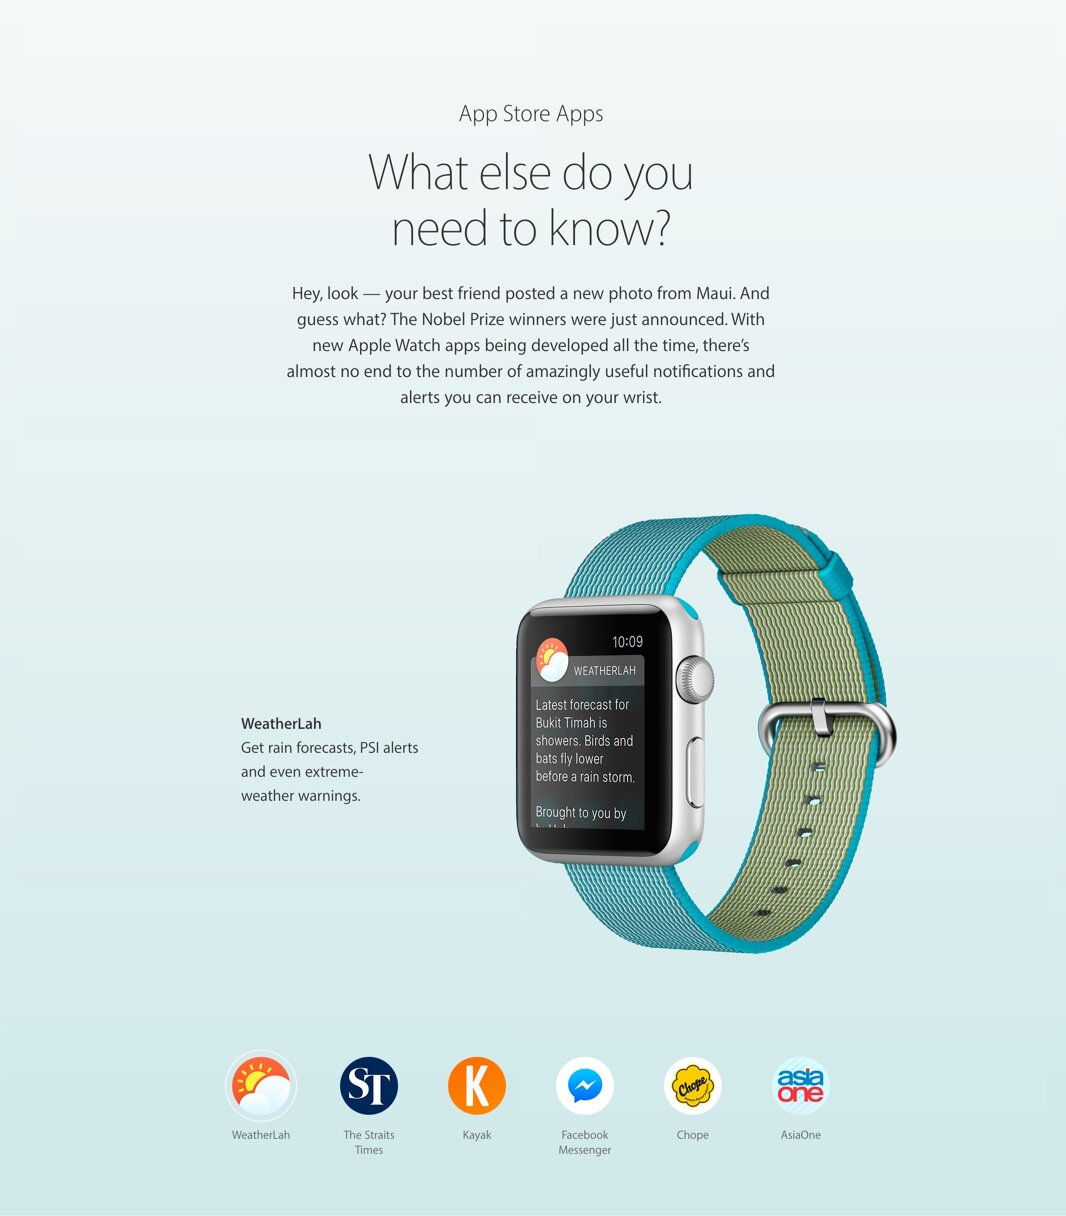 Weatherlah Featured on the Apple Watch Page